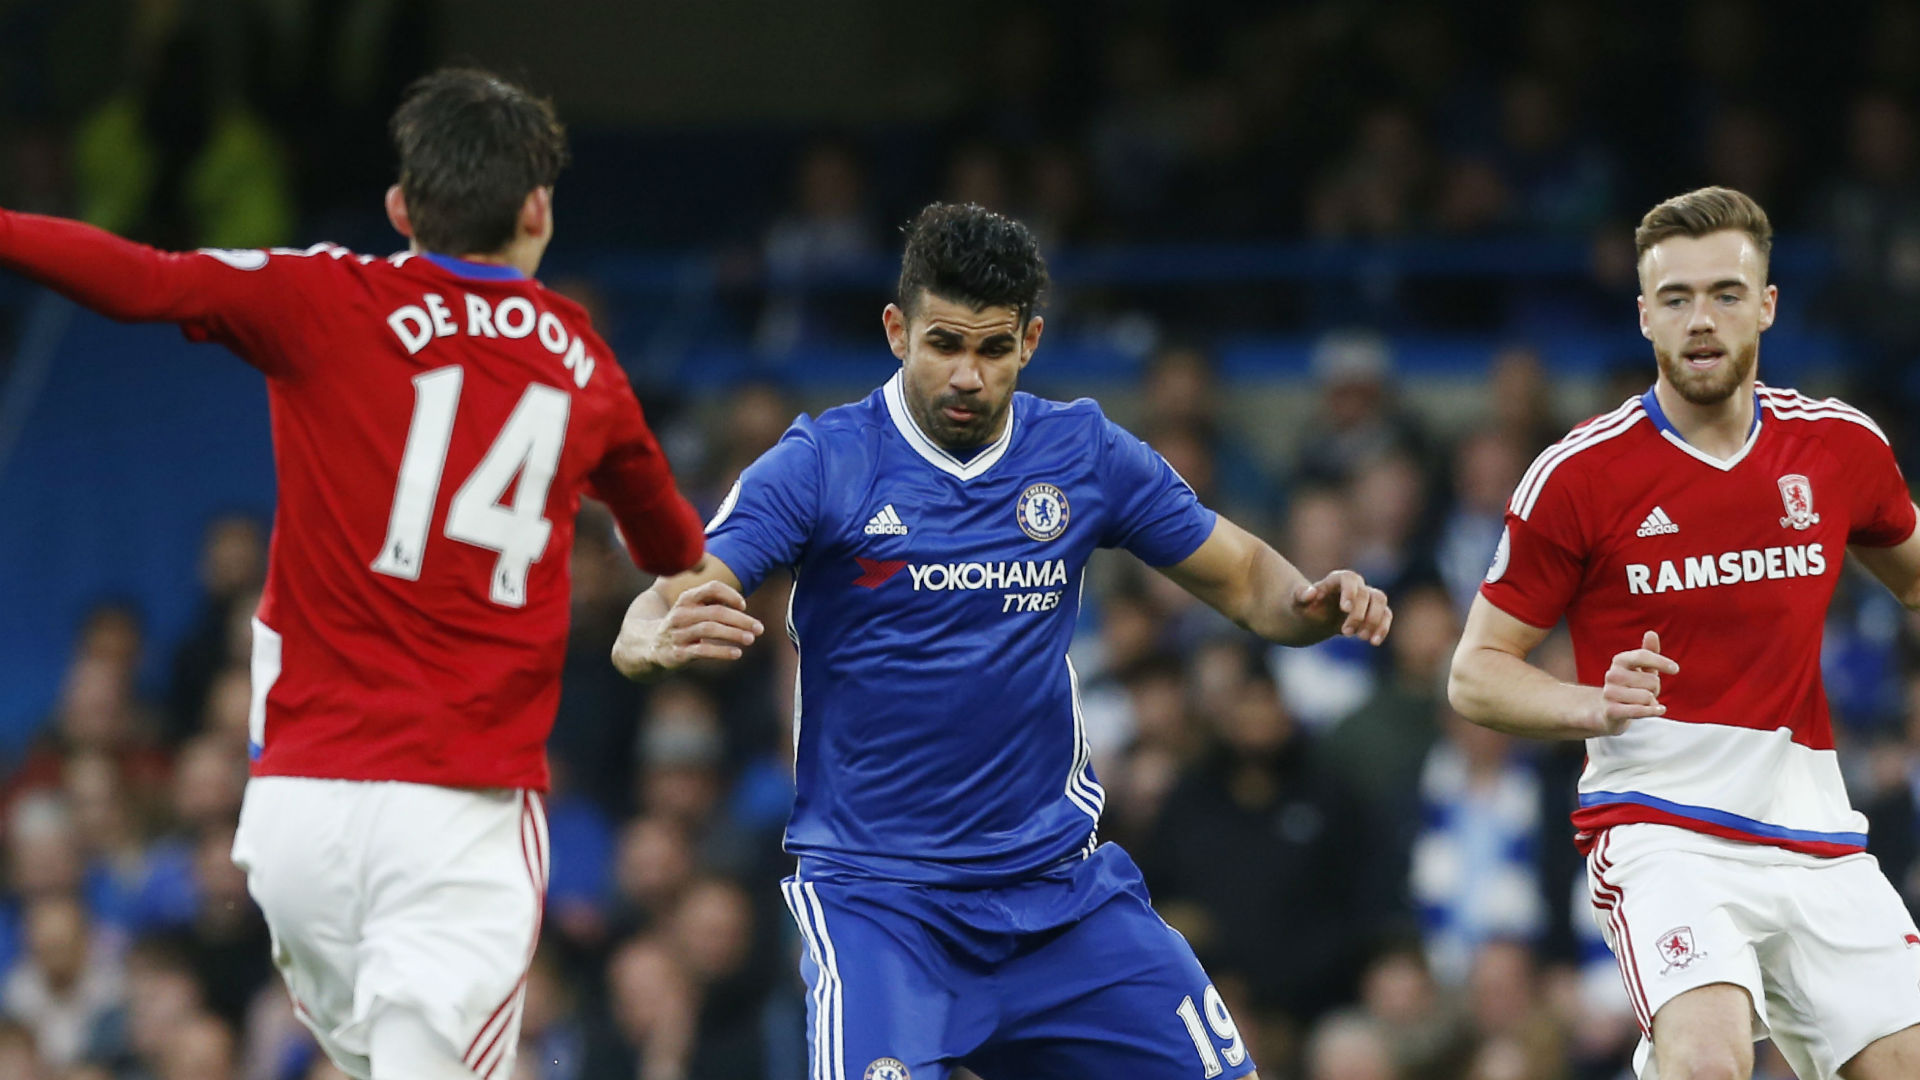 Premier League: Chelsea-Middlesbrough 3-0, Conte ad un passo dal titolo